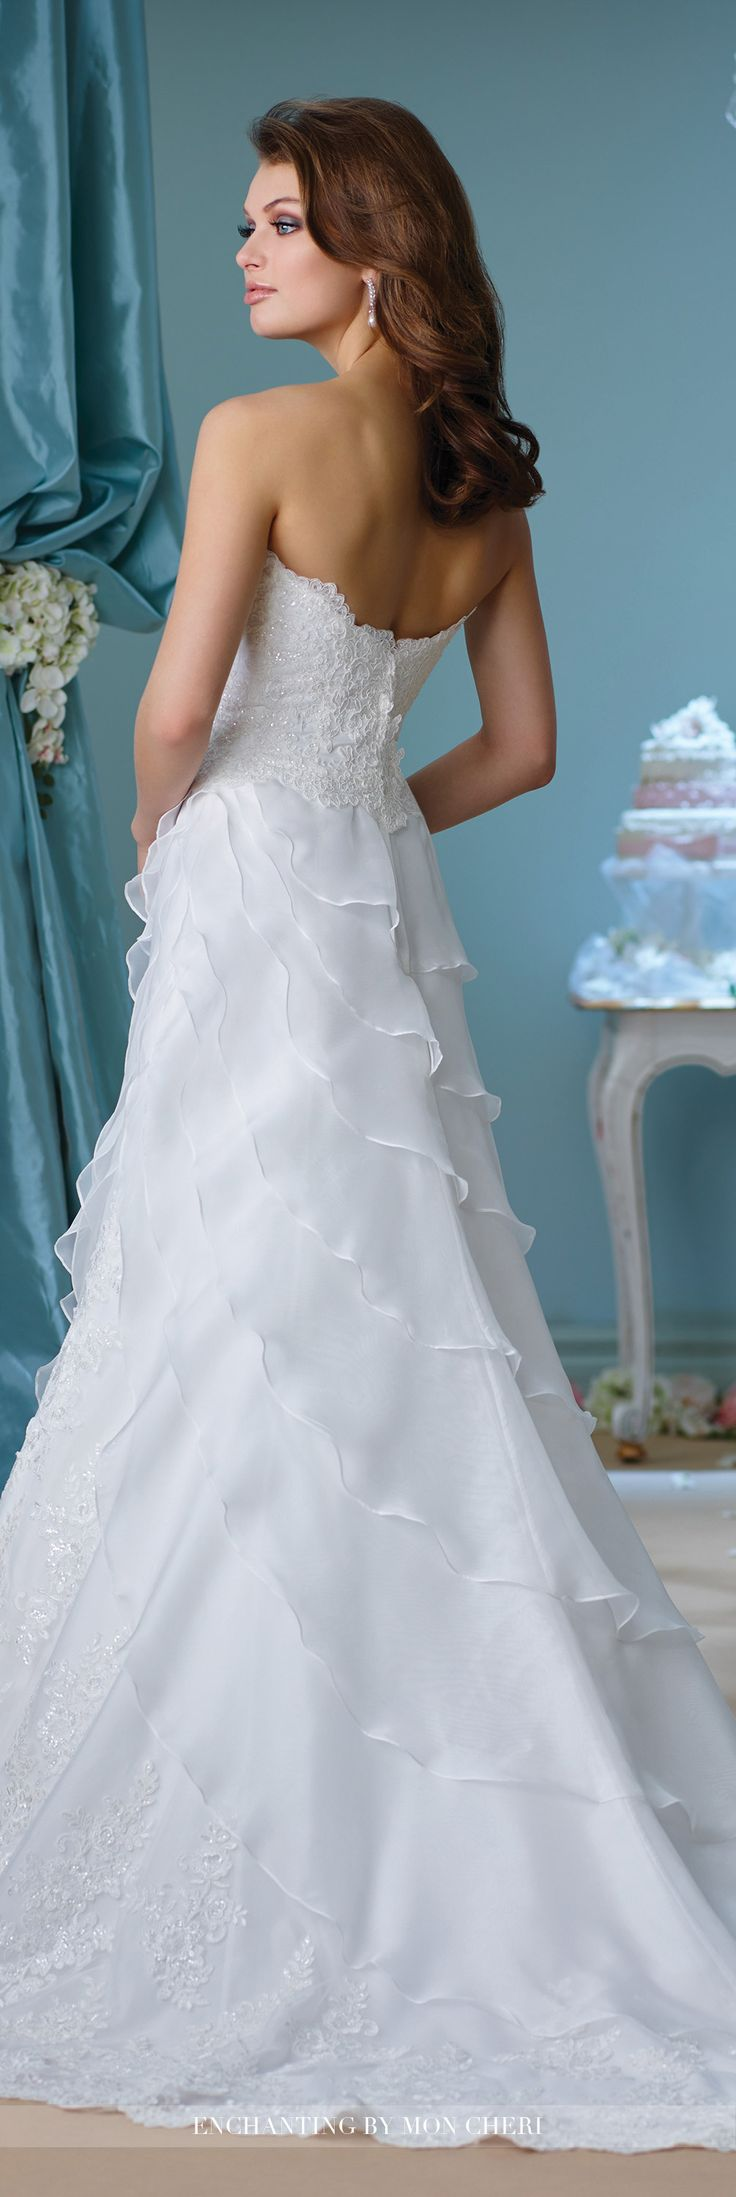 Unique Lindy Bop Wedding Dress Image Collection - All Wedding ...